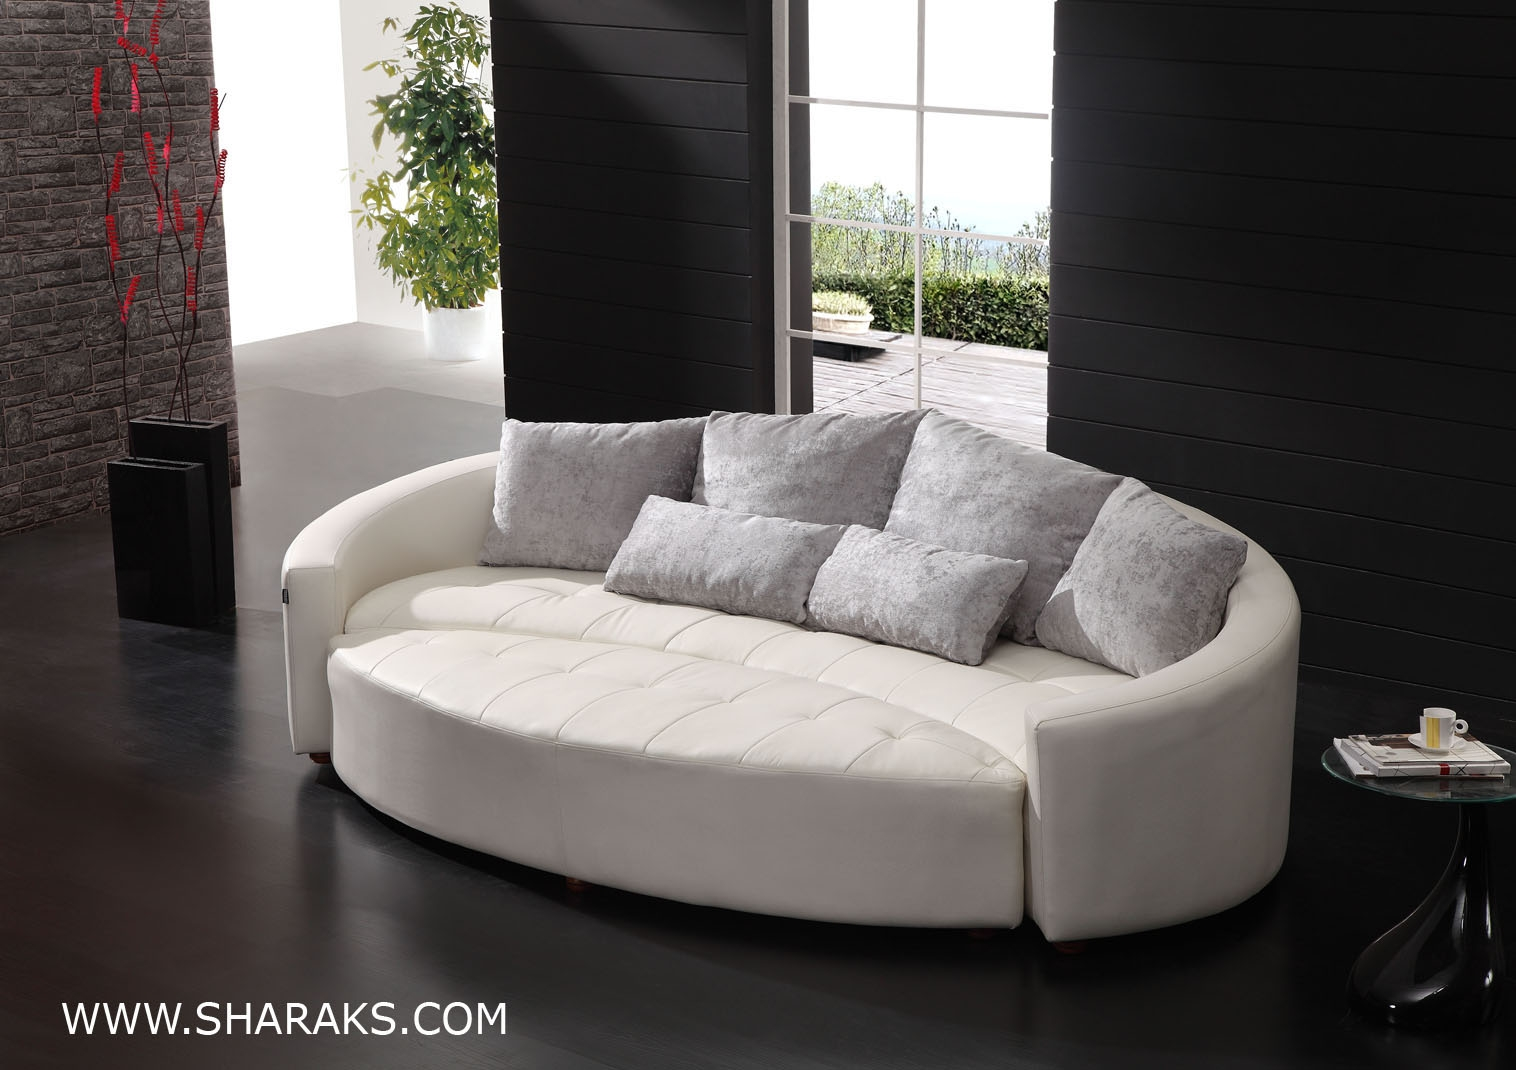 stylish affordable sofas uk kirkdale kensington sofa bed 12 ideas of contemporary curved